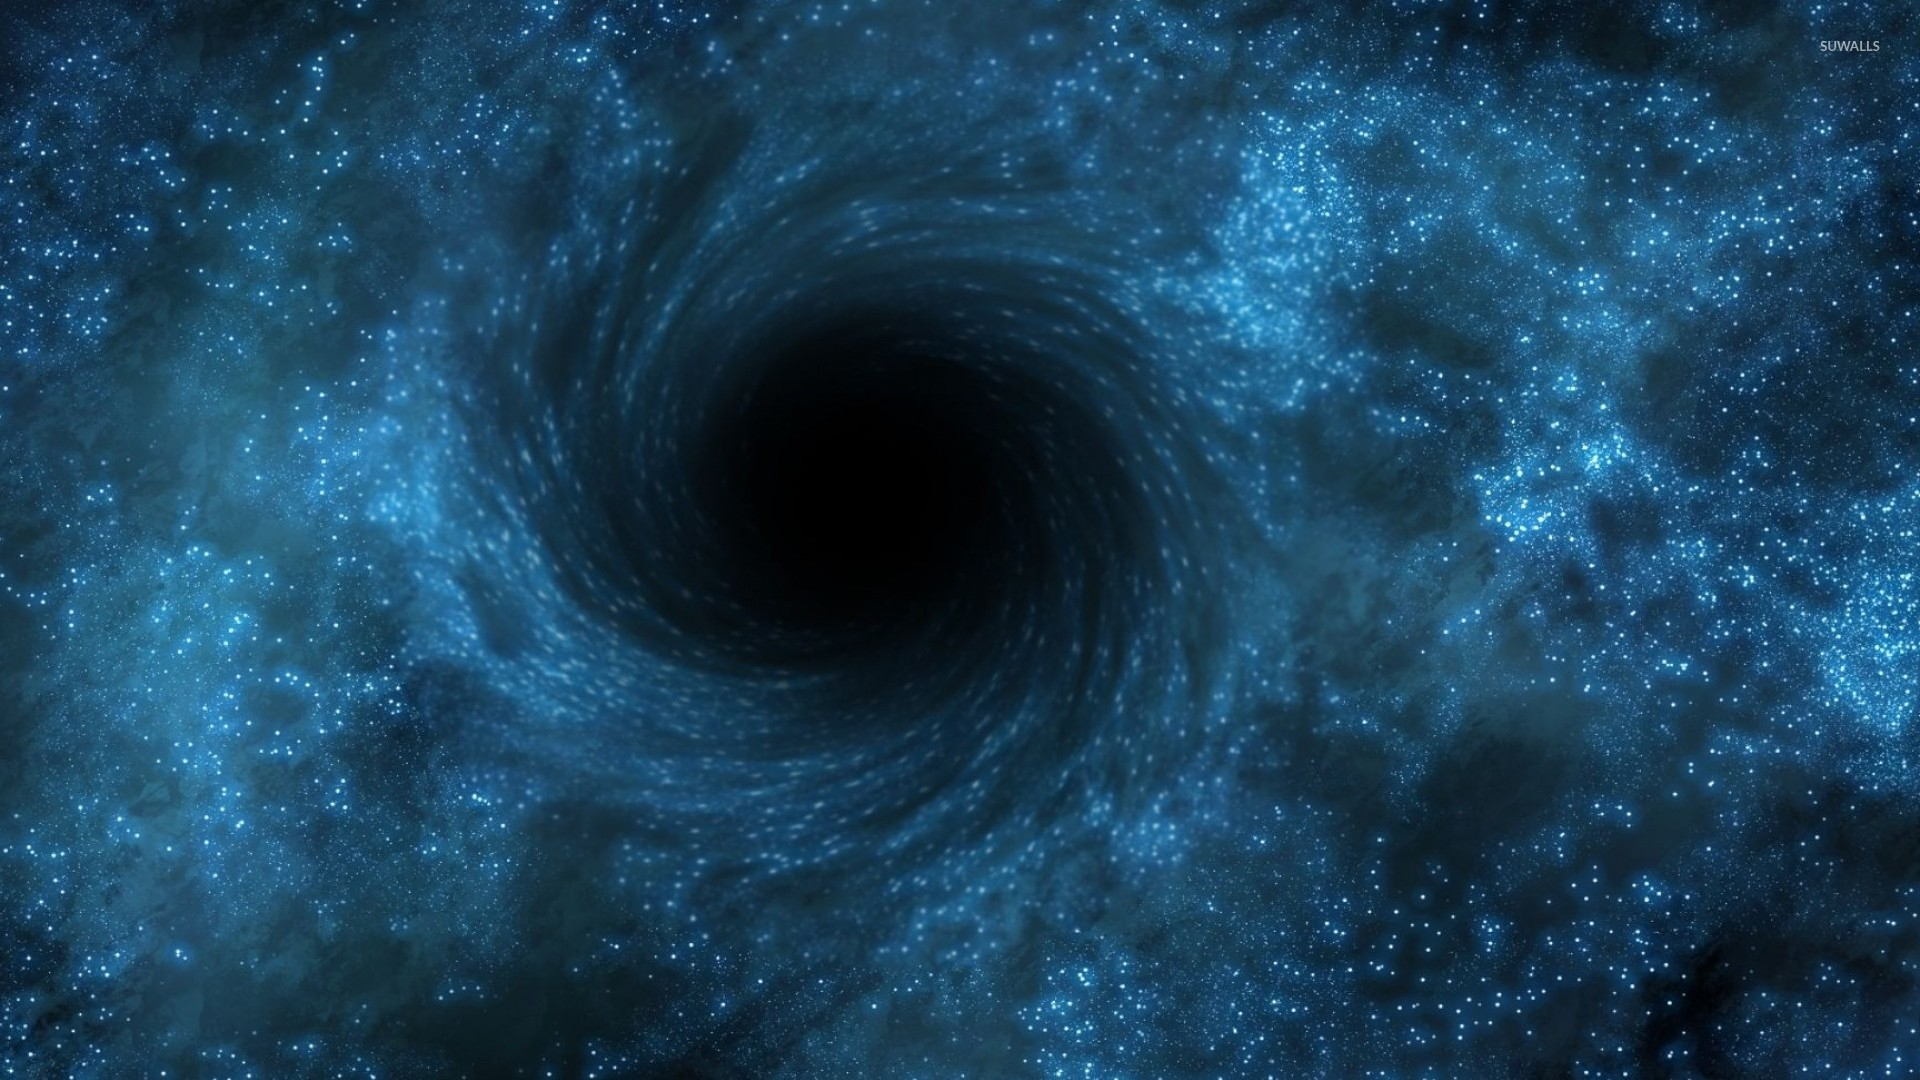 Black hole wallpaper 68 images - Black space wallpaper ...